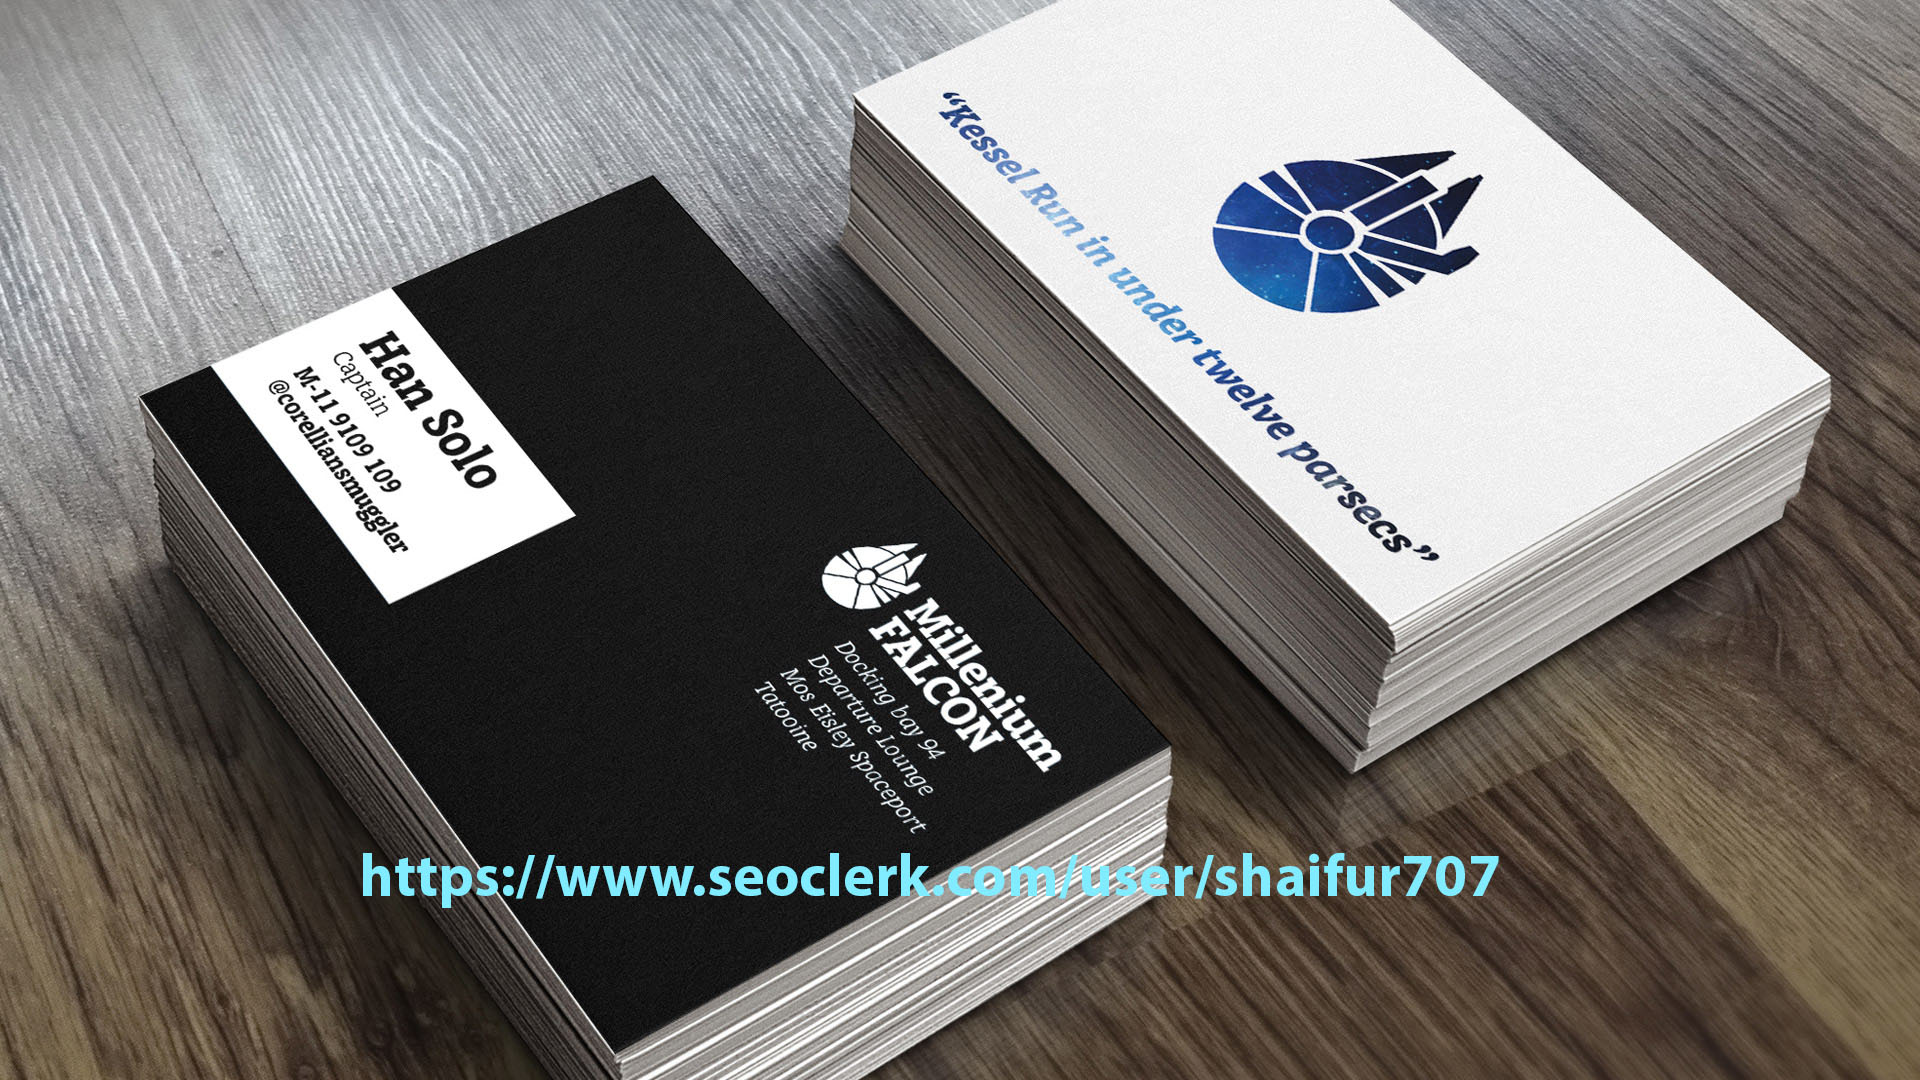 Clean Design Professional Business Card for $5 - SEOClerks